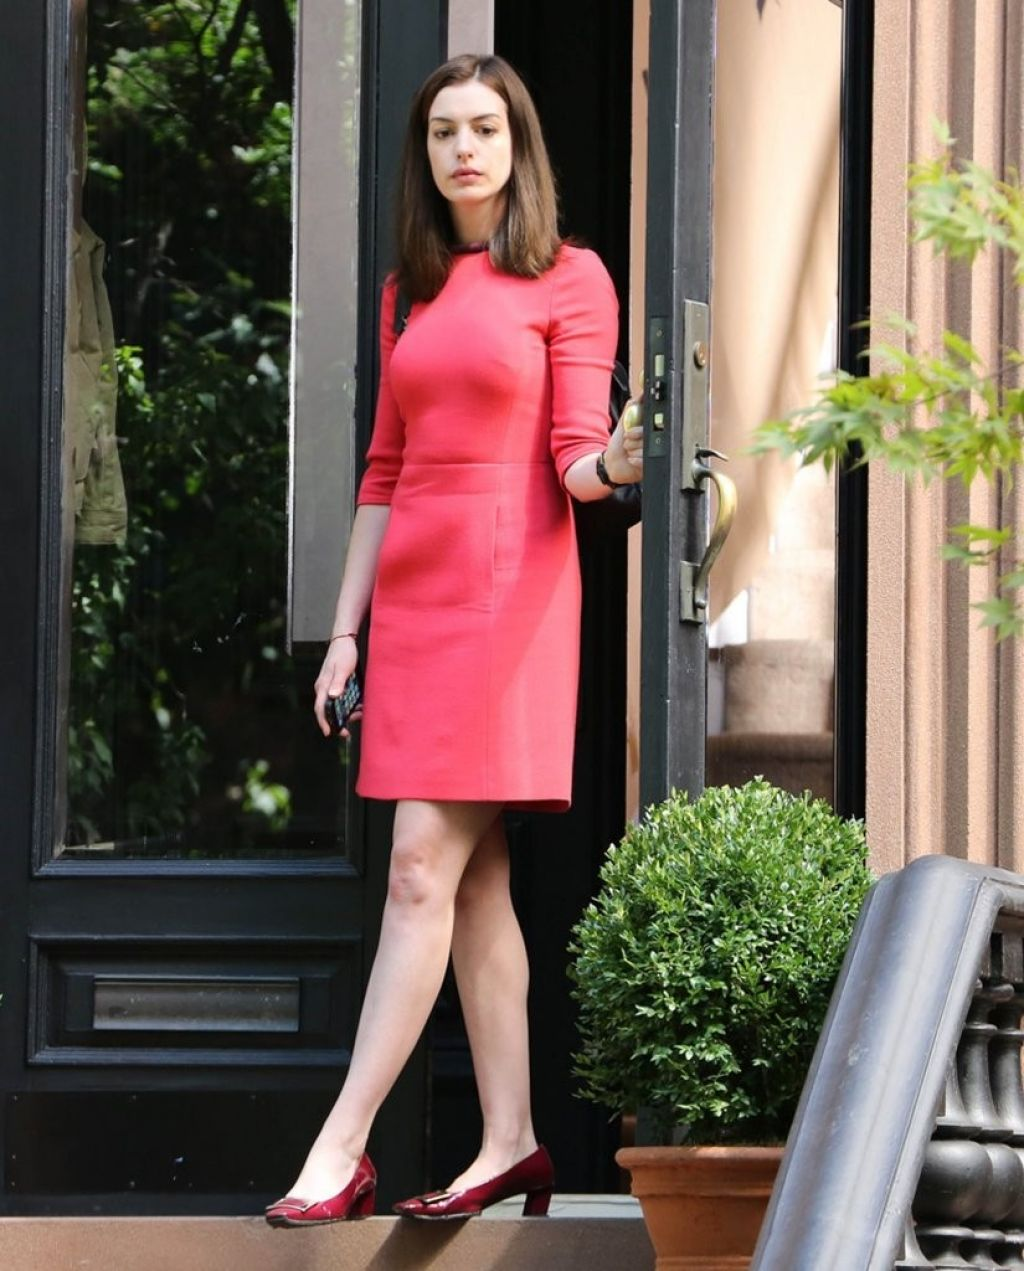 Anne Hathaway Outfits: 'The Intern' Set Photos, New York City